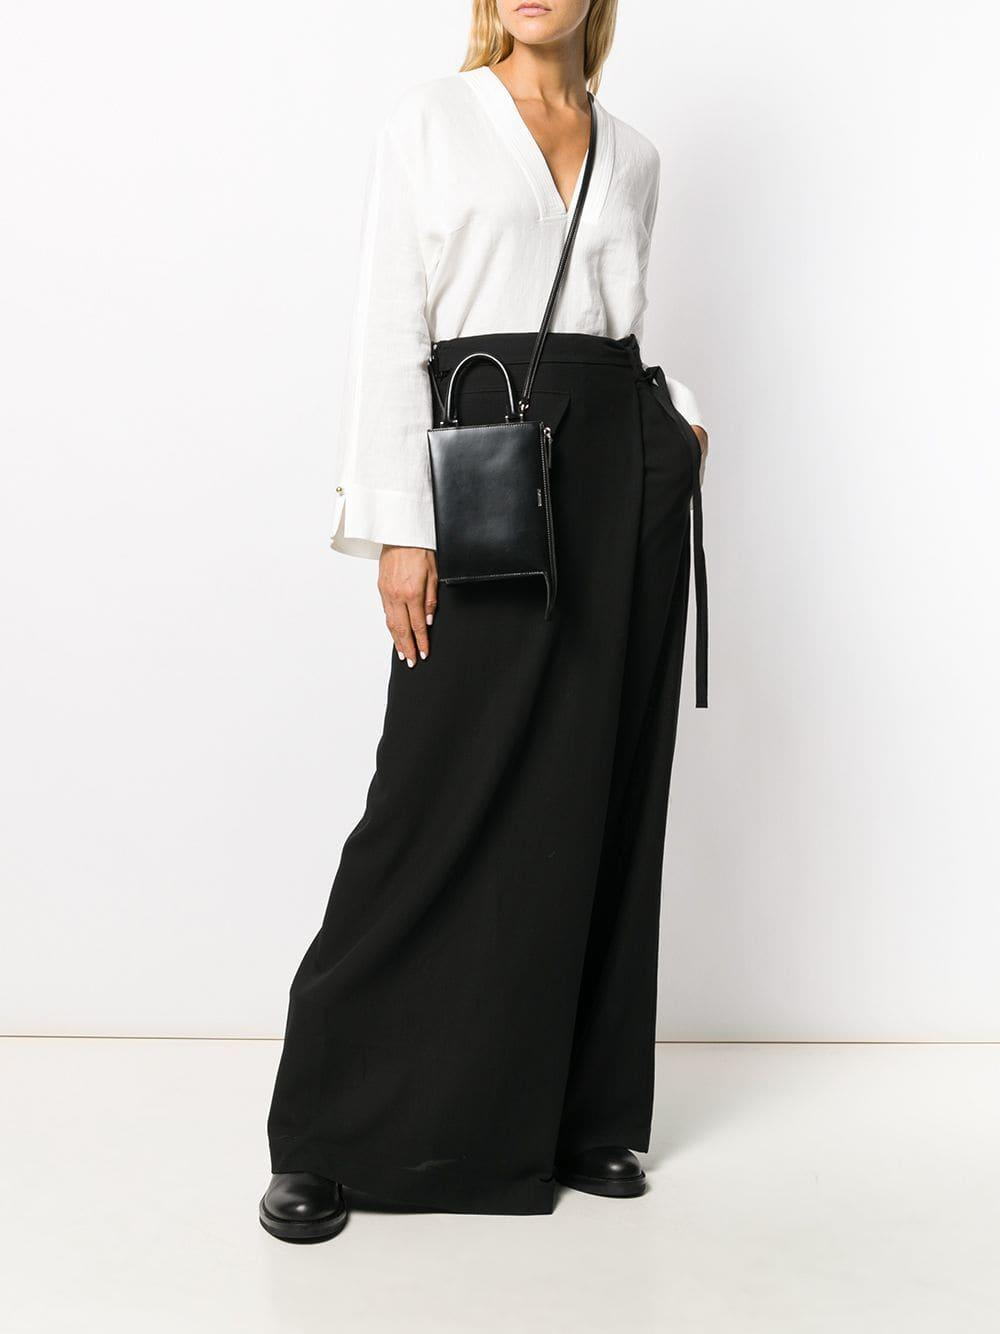 Jil Sander Leather Shopping Crossbody Bag in Black